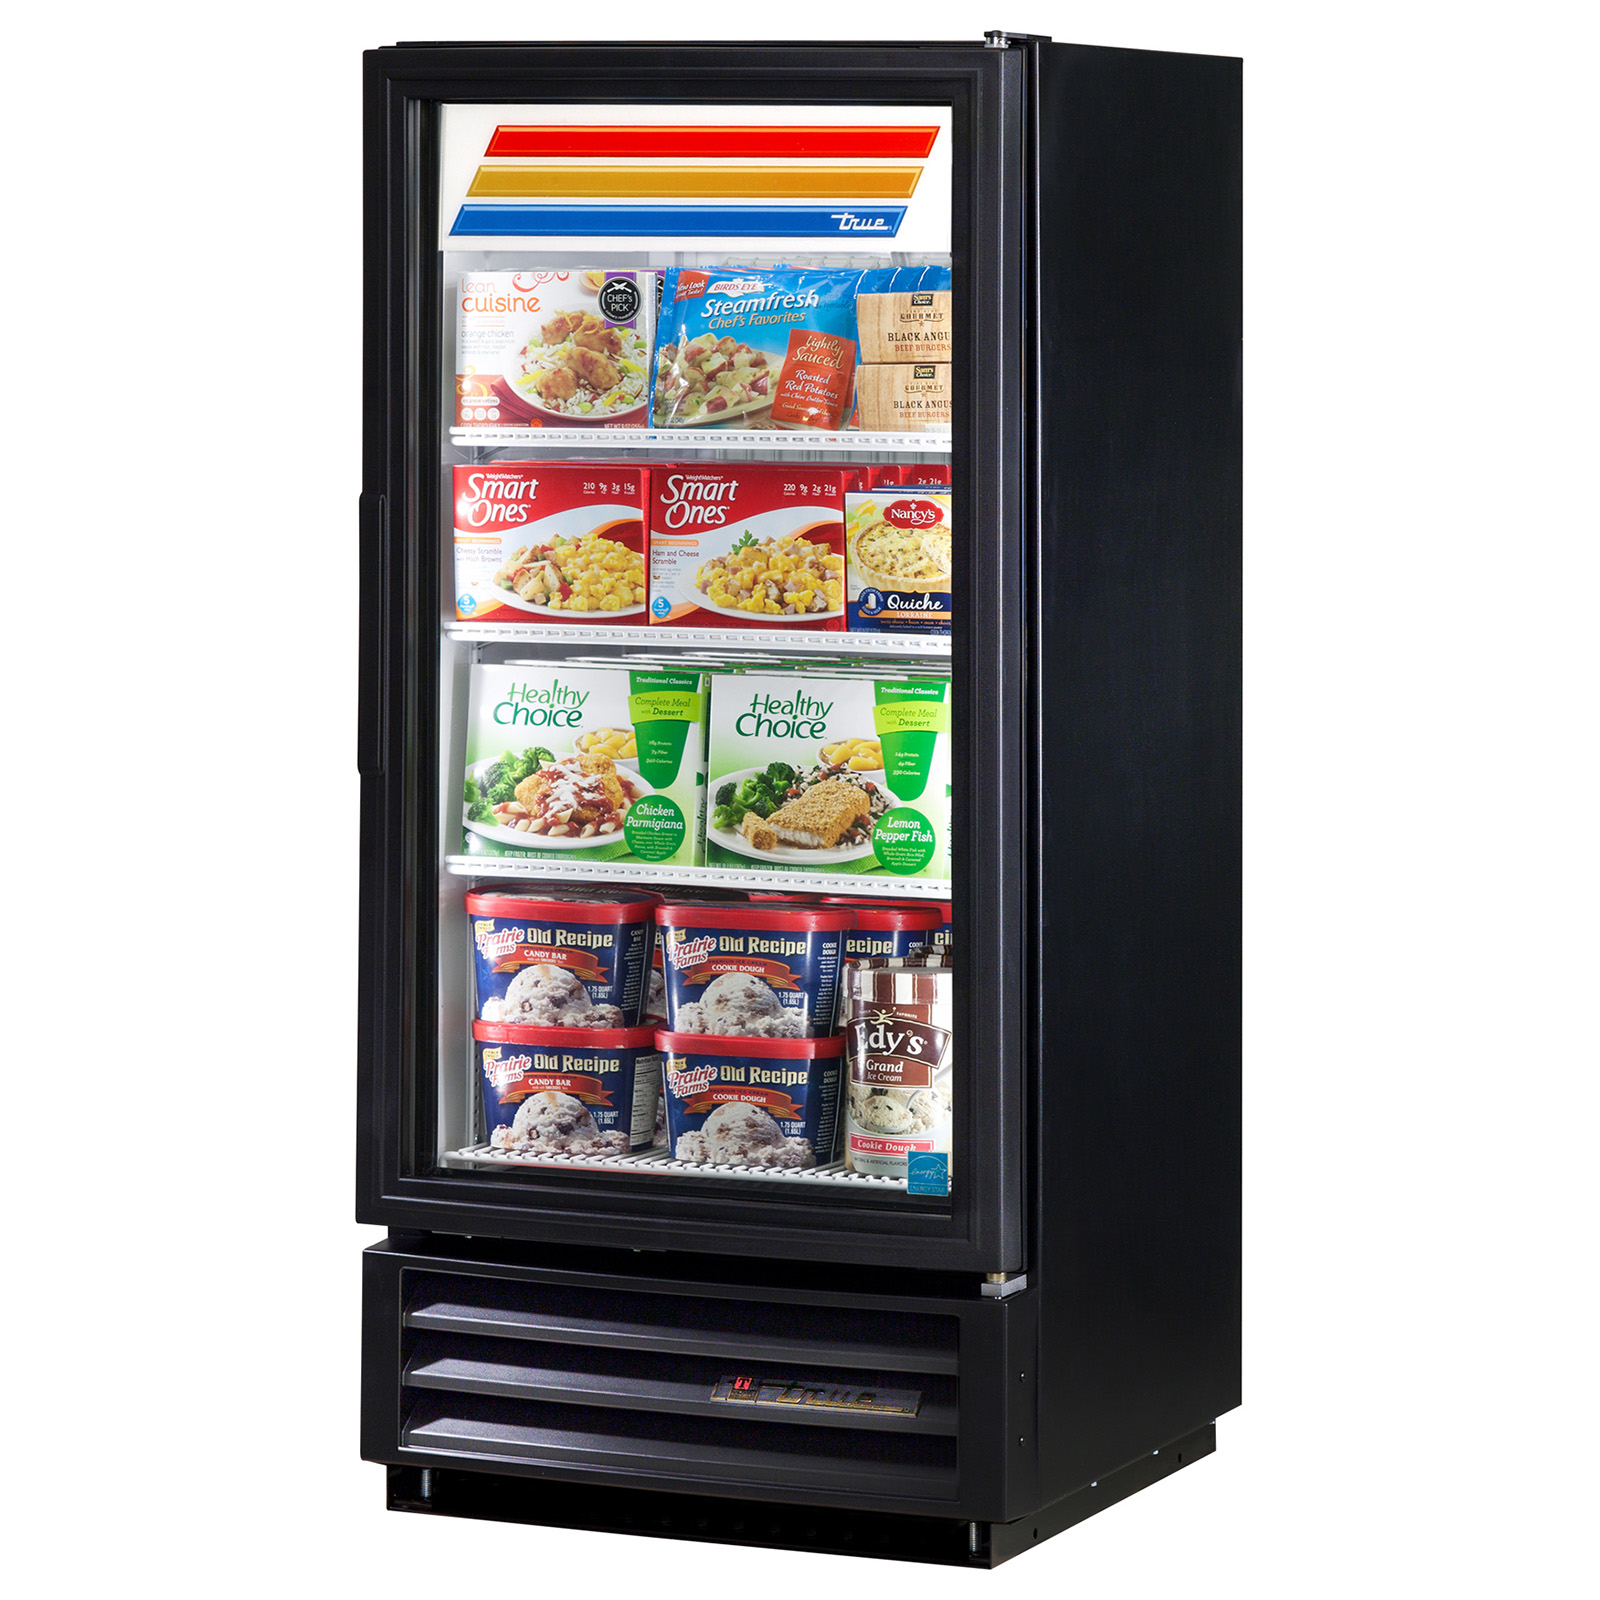 GDM-10F-LD True - Freezer Merchandiser one-section